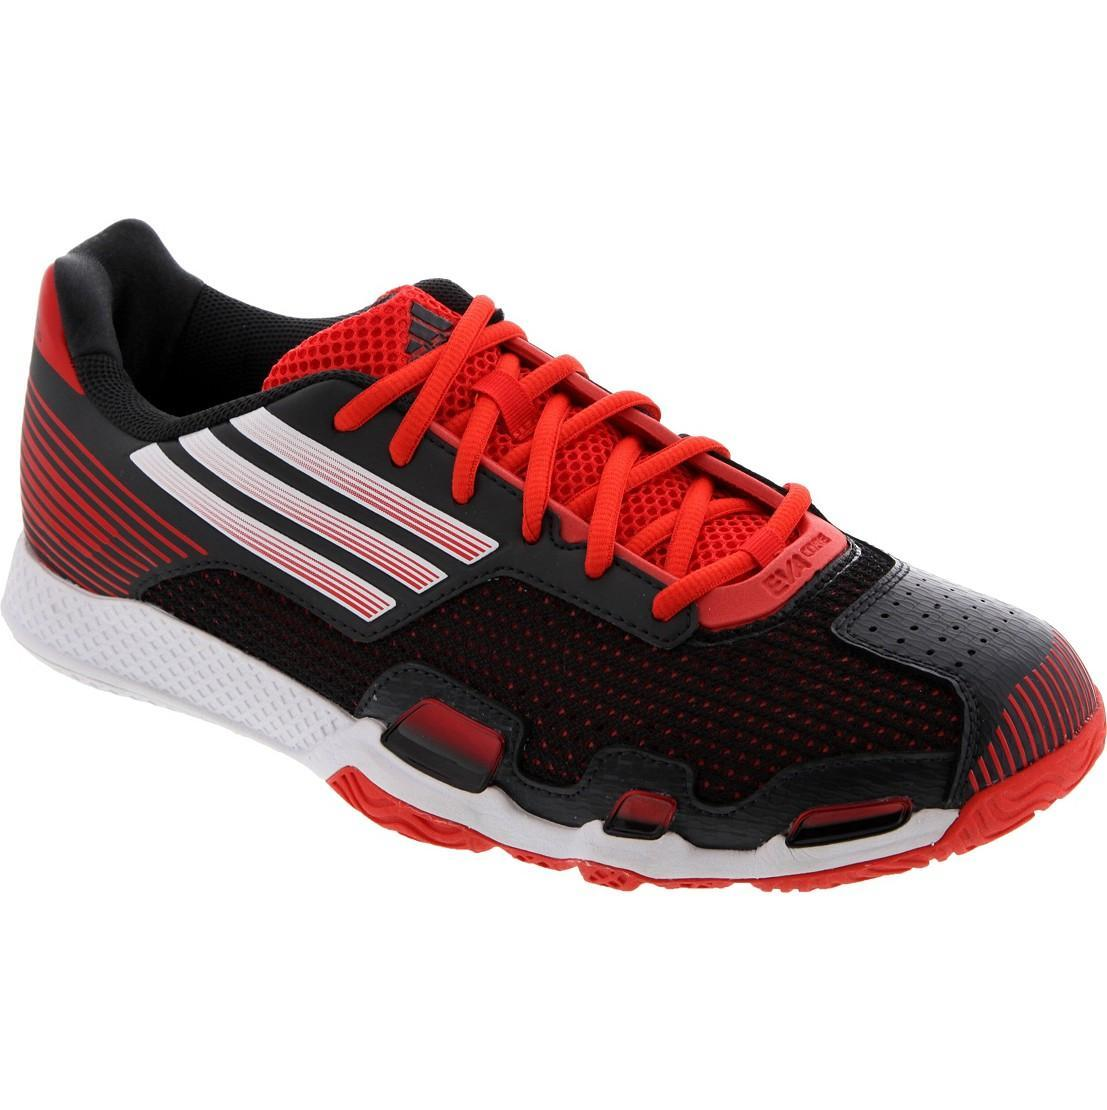 Best Selling Squash Shoes